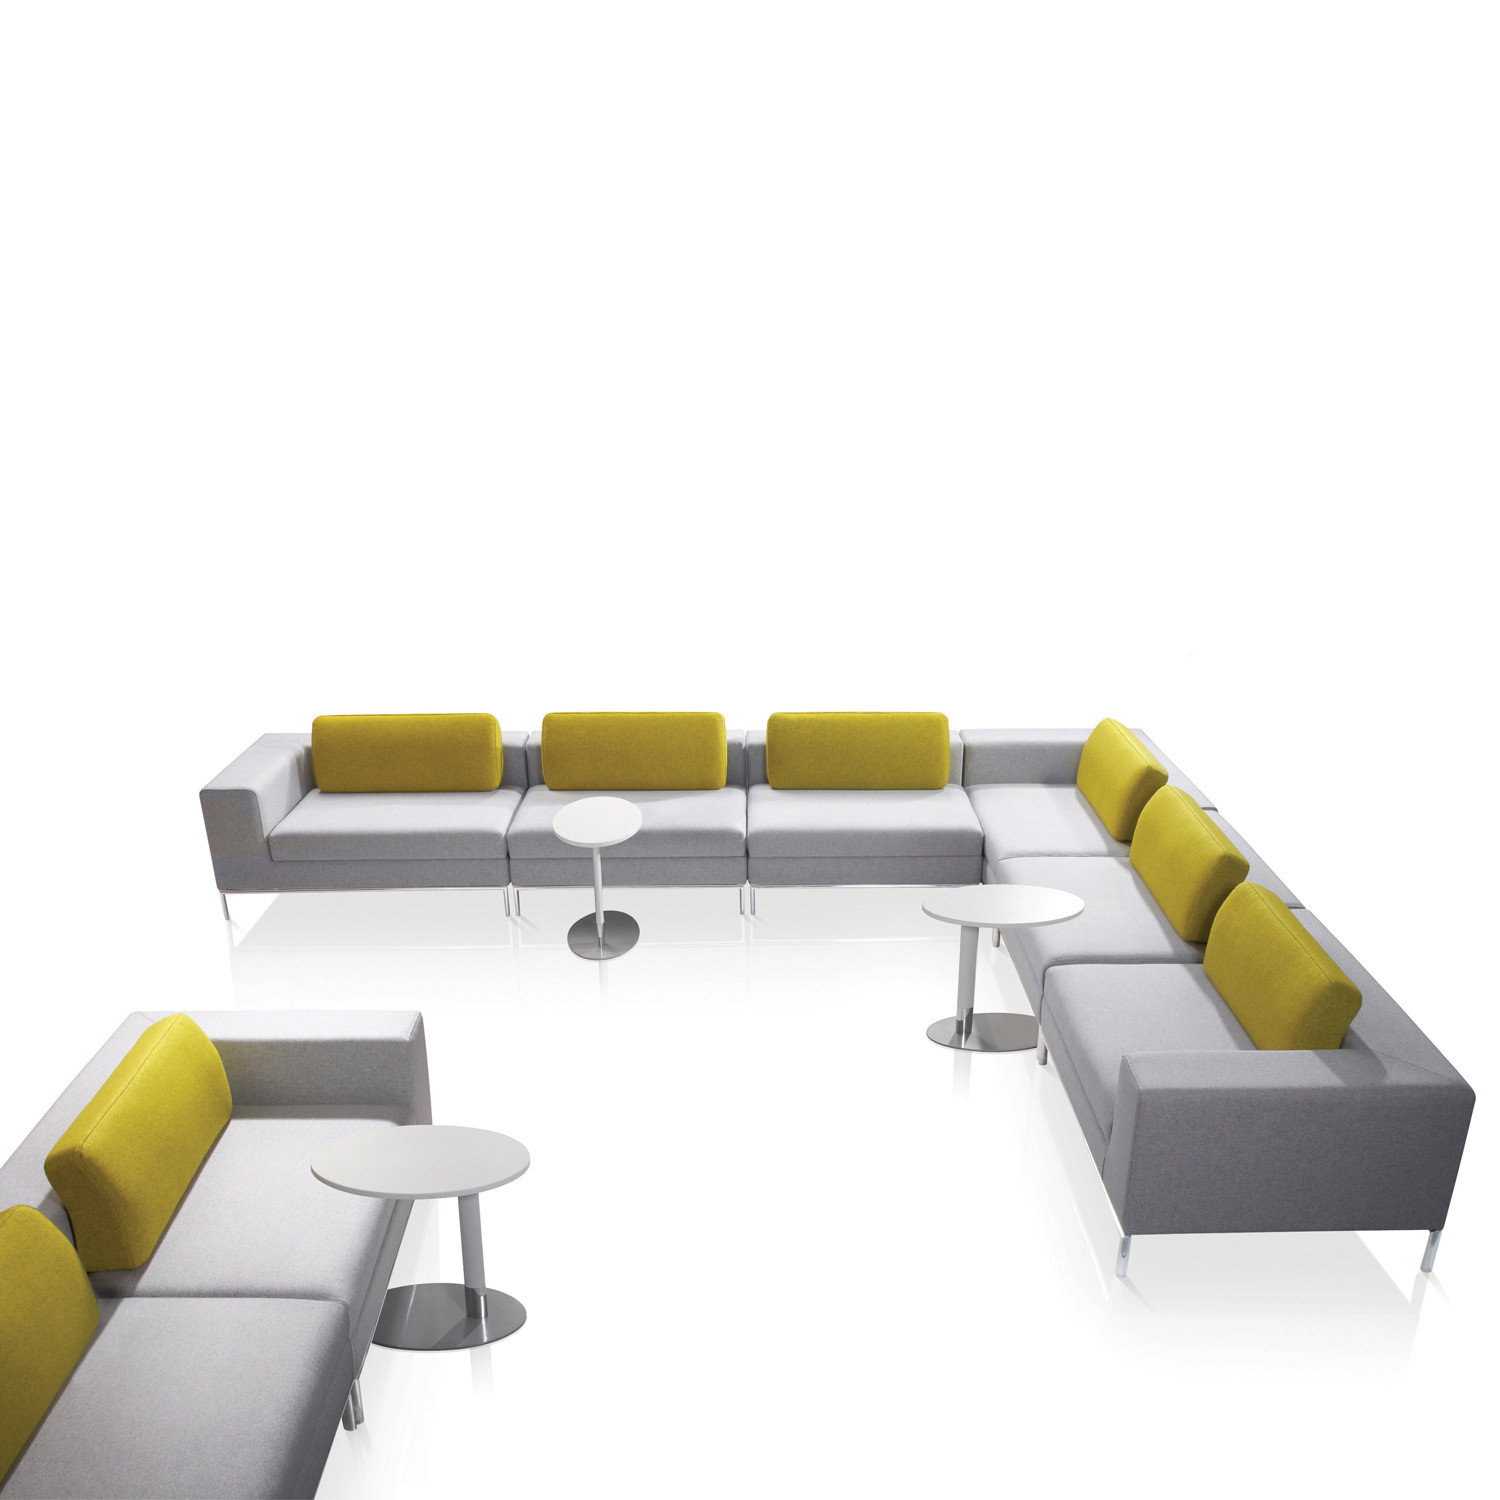 Zeus Tables with Zeus Seating by Connection